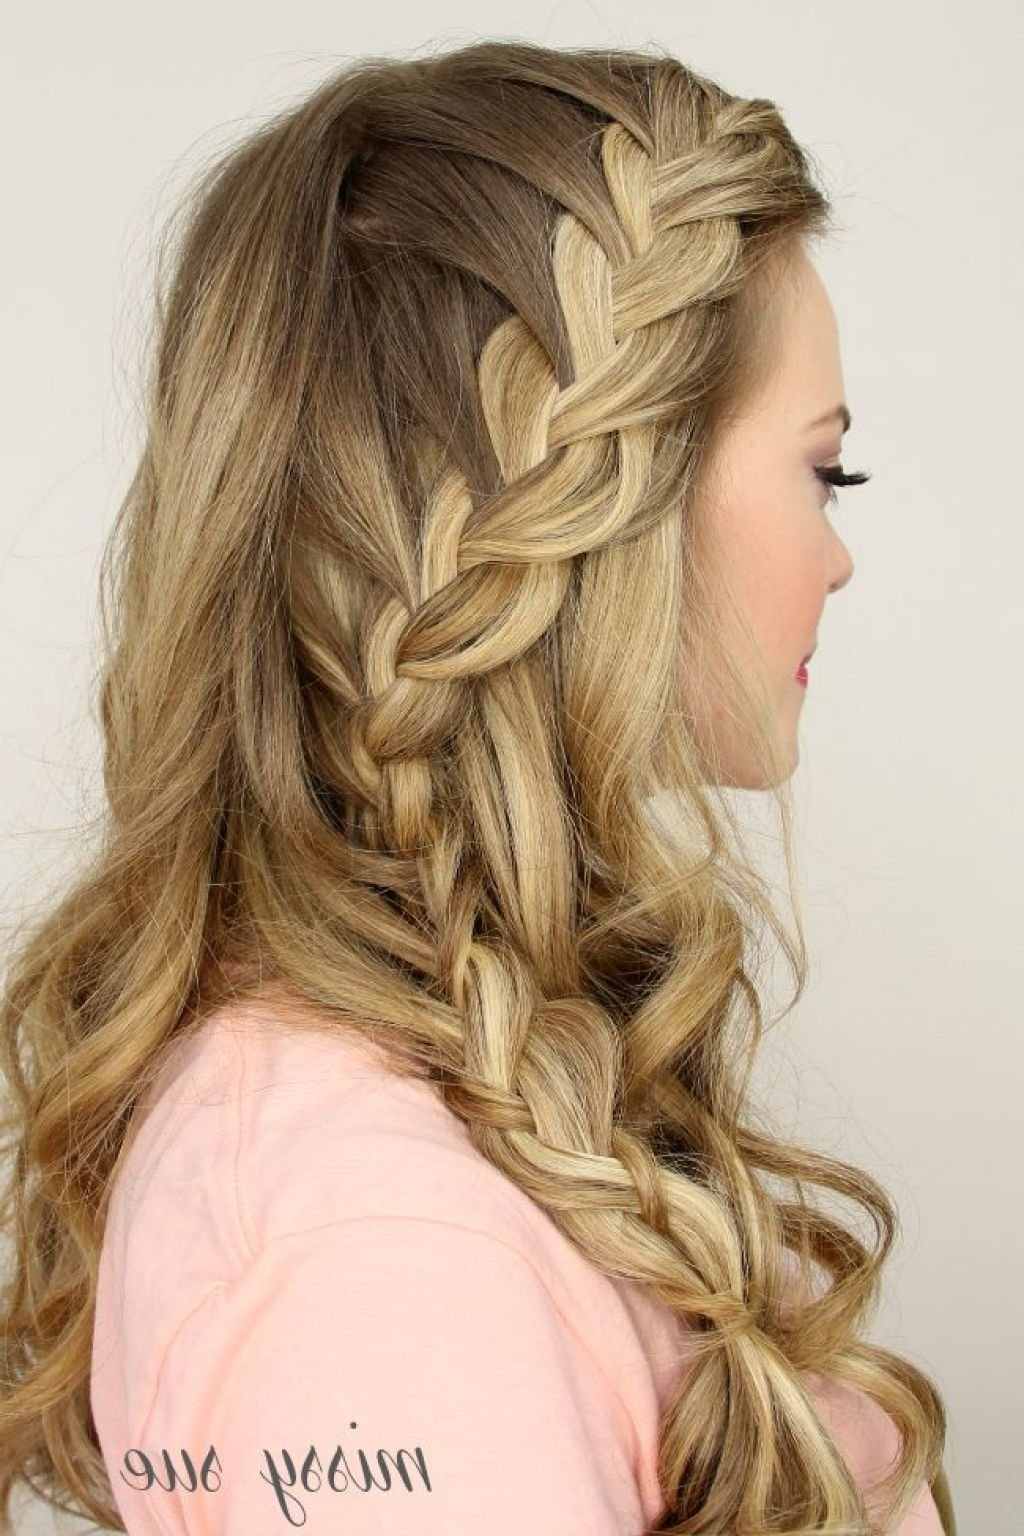 New Cute Hairstyle Ideas For Long Hair Hairstyle For Women Man Ideas With Pictures